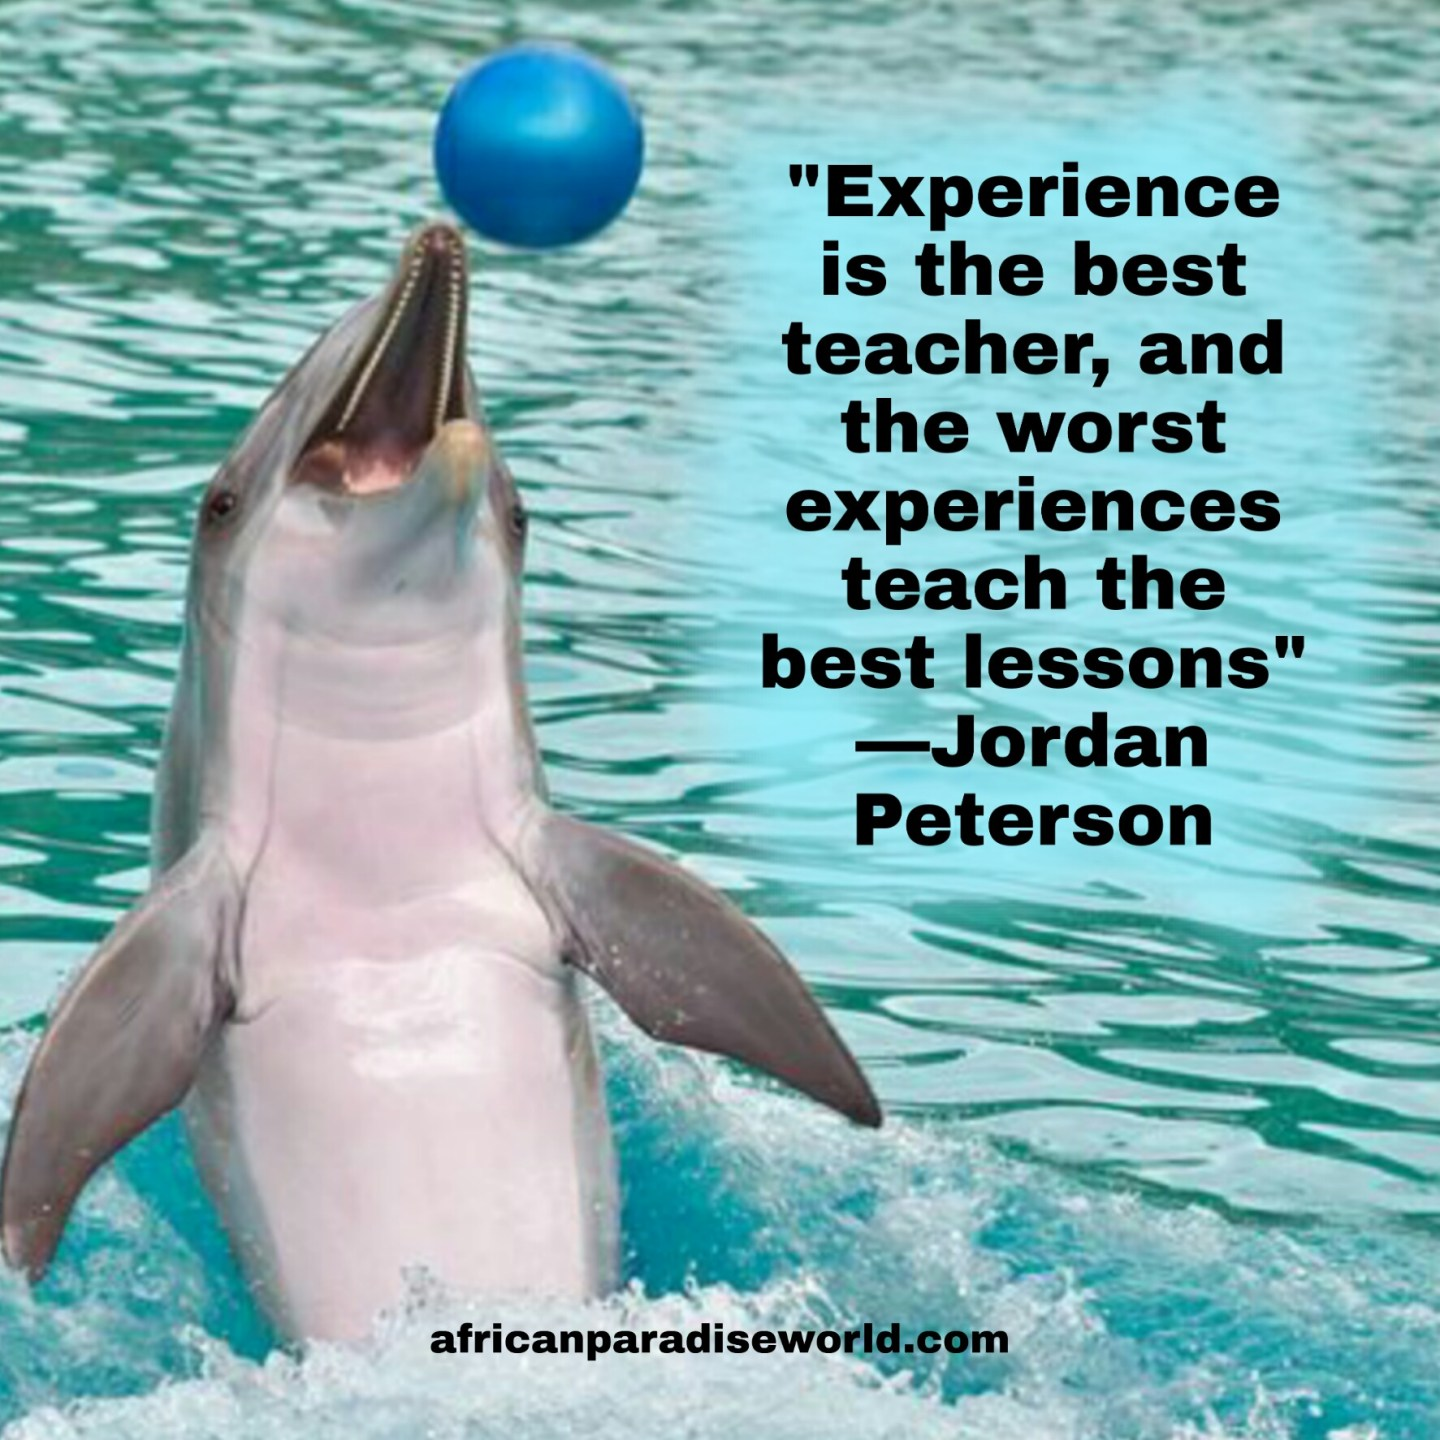 Experience is the best teacher quote from Jordan Peterson